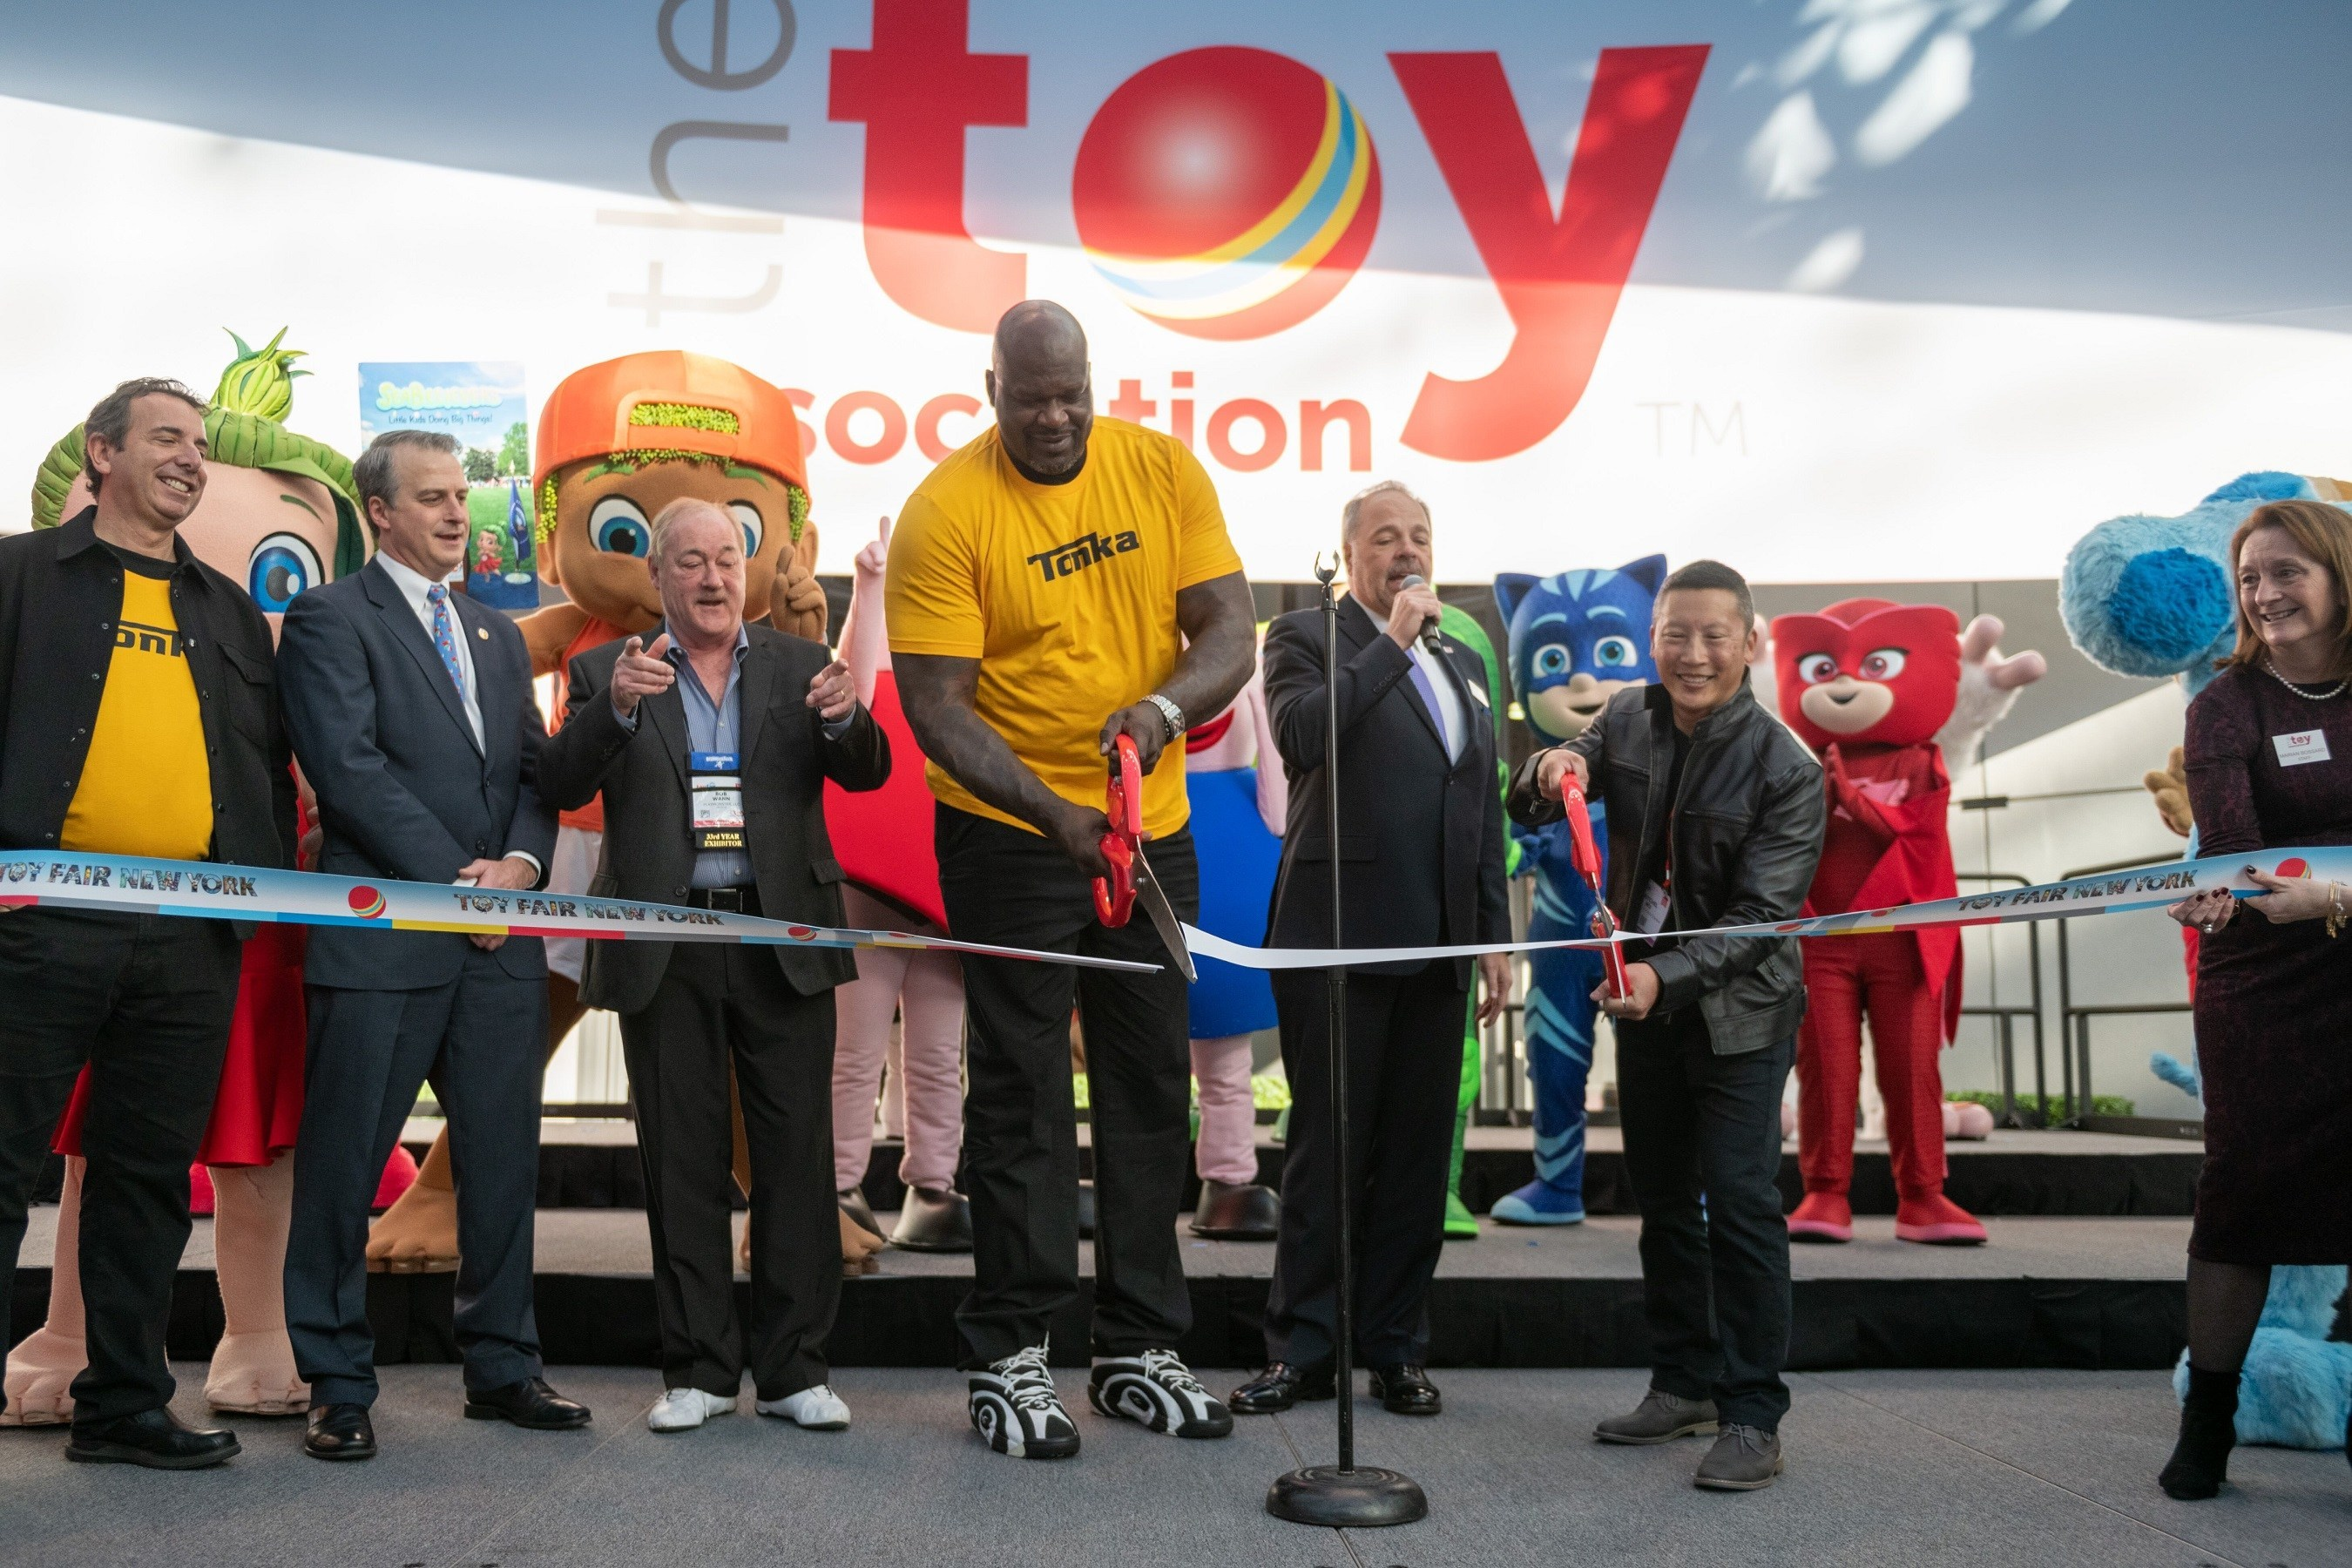 Toy Fair New York Opens Today; Exclusively Unveils 100,000+ New & Trending Toys & Games!